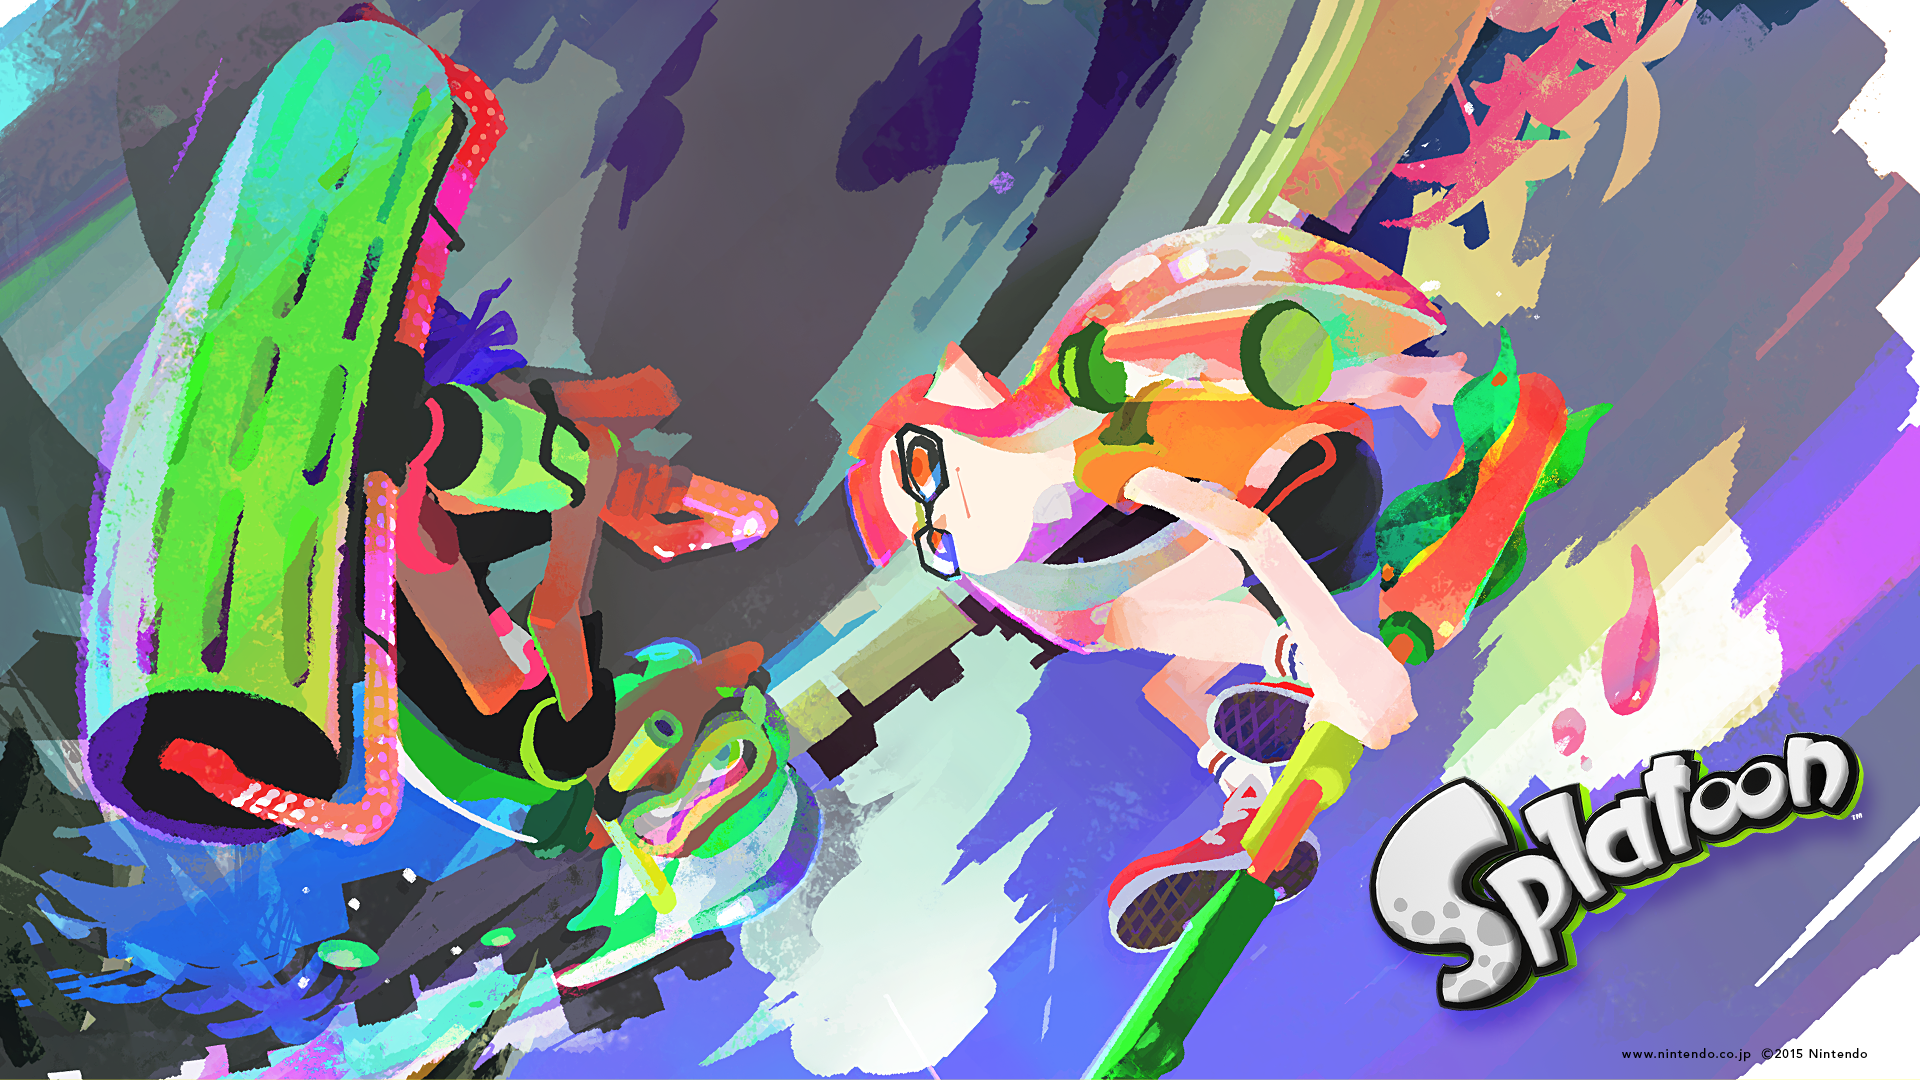 Splatoon Summer Pc 1920 1080 Png 1920 1080 スプラトゥーン